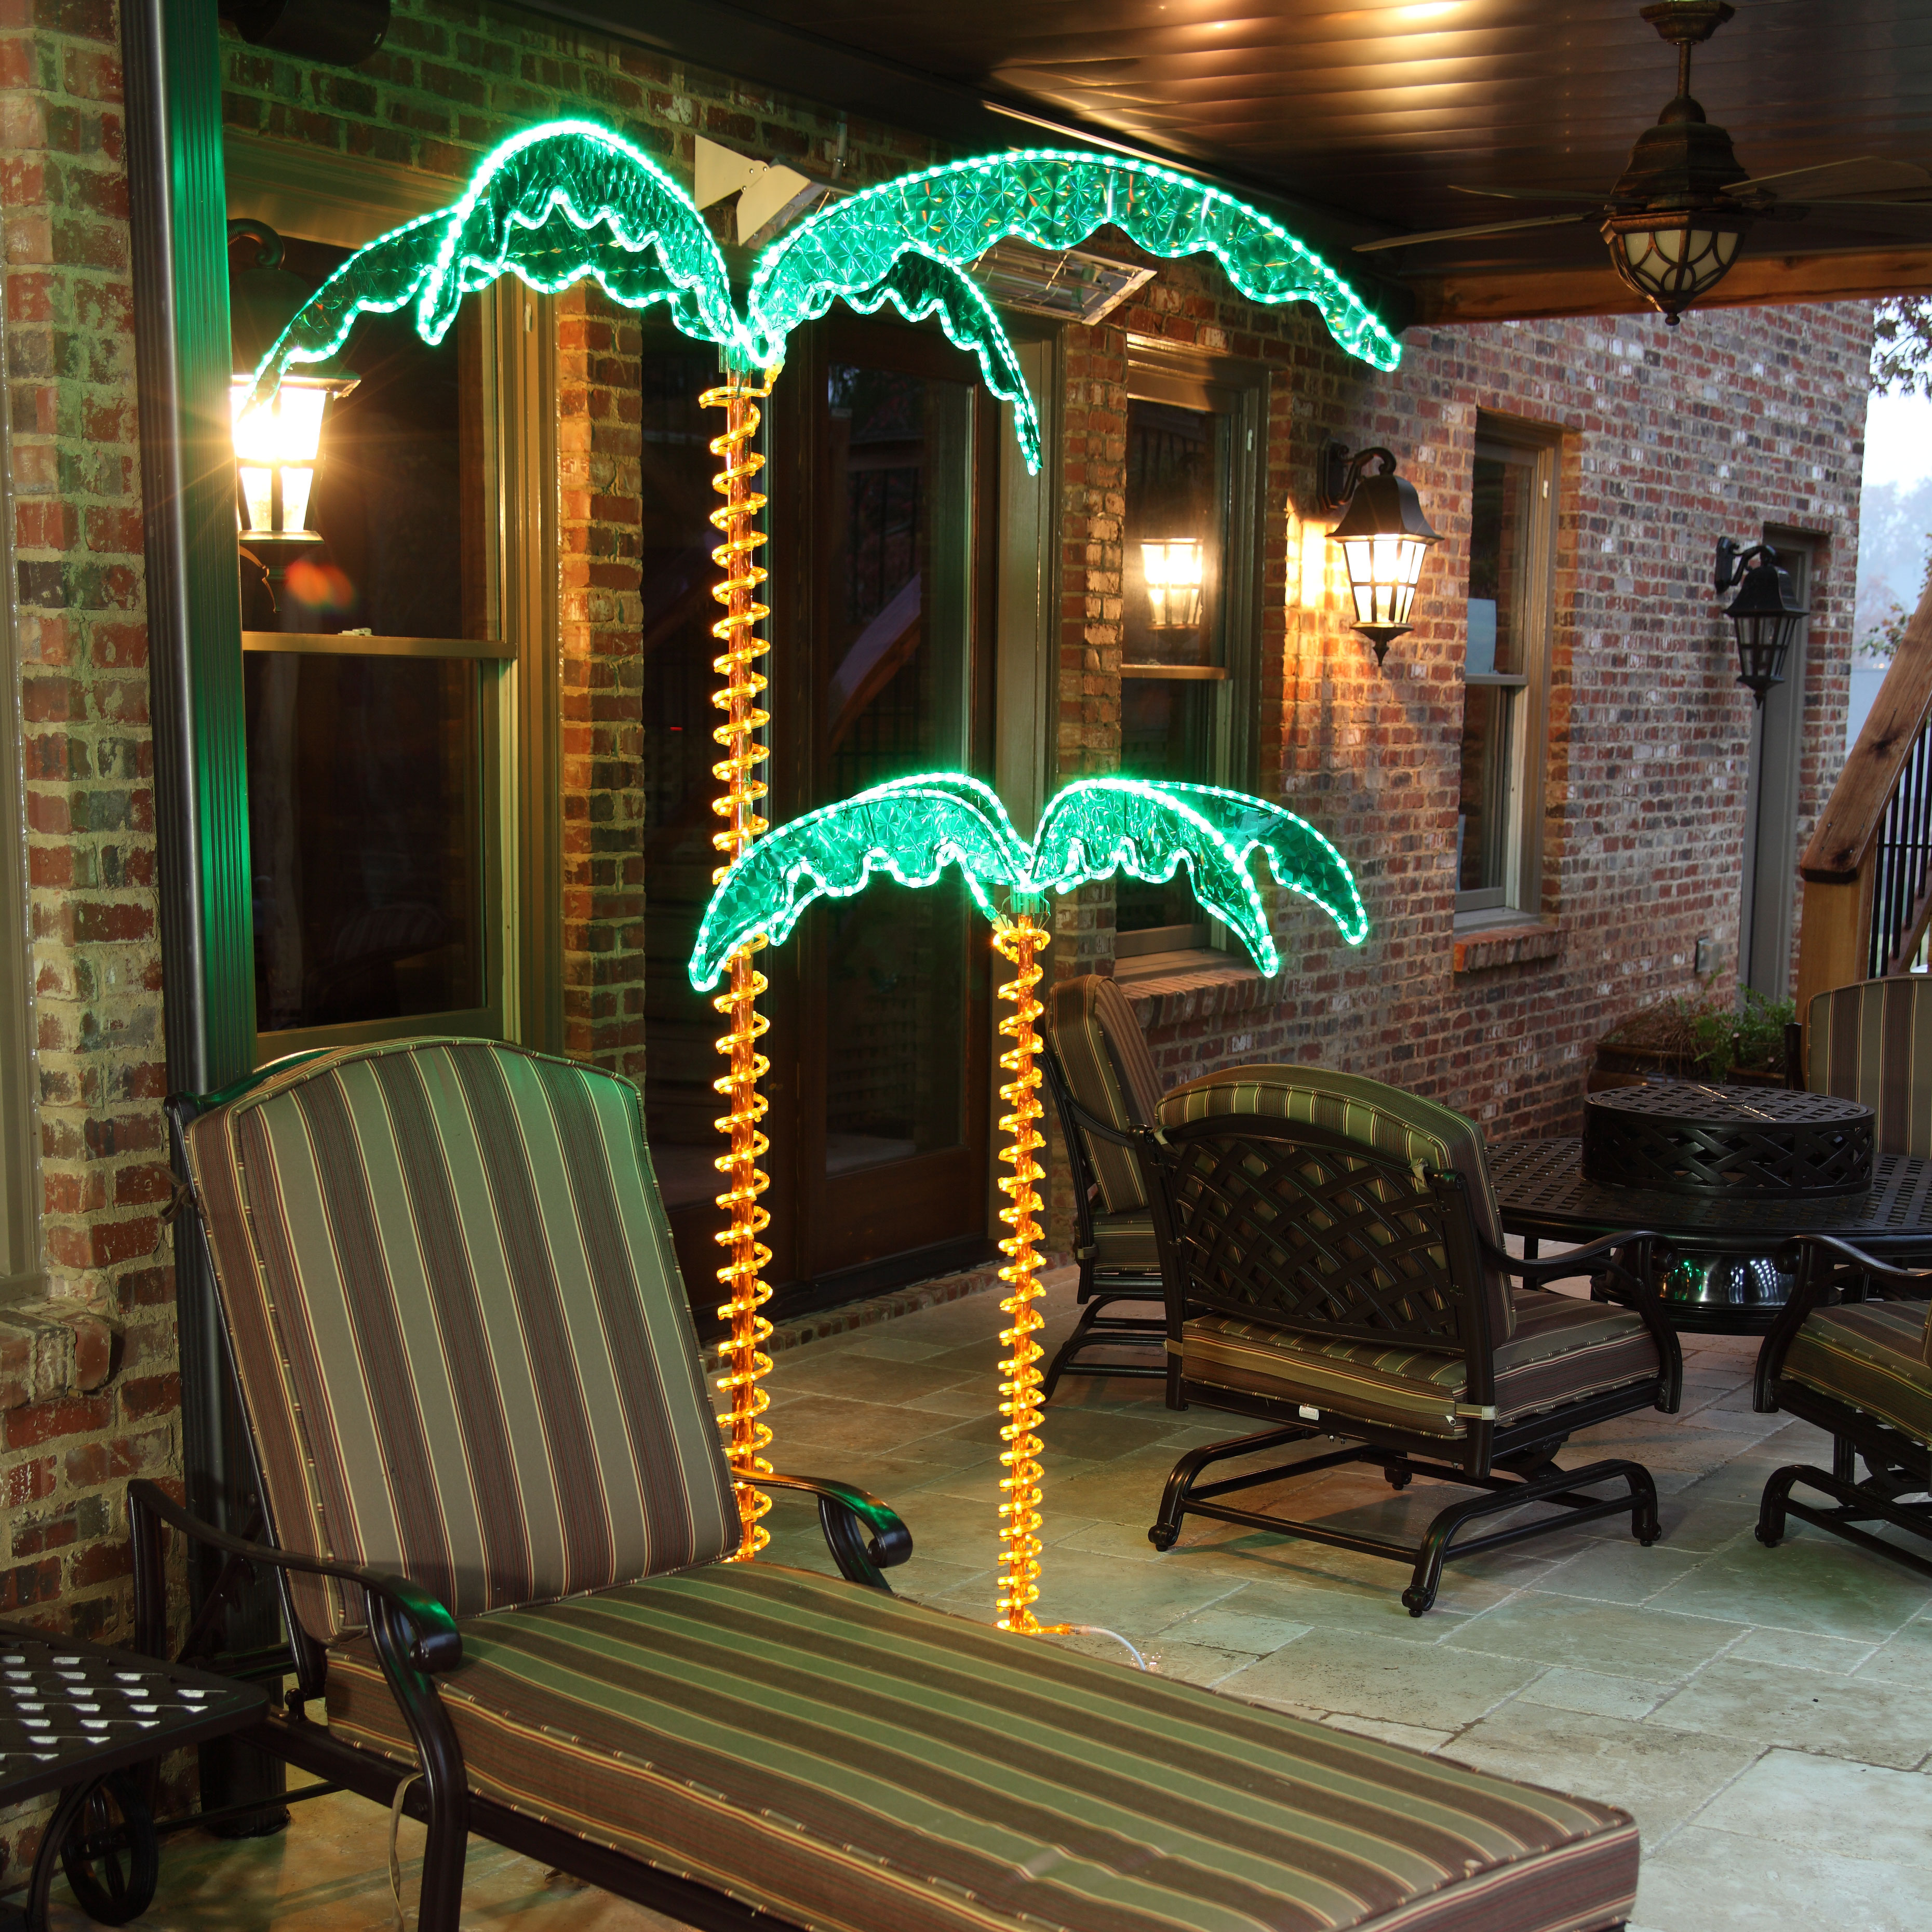 Wintergreen Lighting Holographic Lighted Palm Tree Indoor/Outdoor LED Palm Tree Patio Décor UV Protected - Walmart.com & Wintergreen Lighting Holographic Lighted Palm Tree Indoor/Outdoor ...